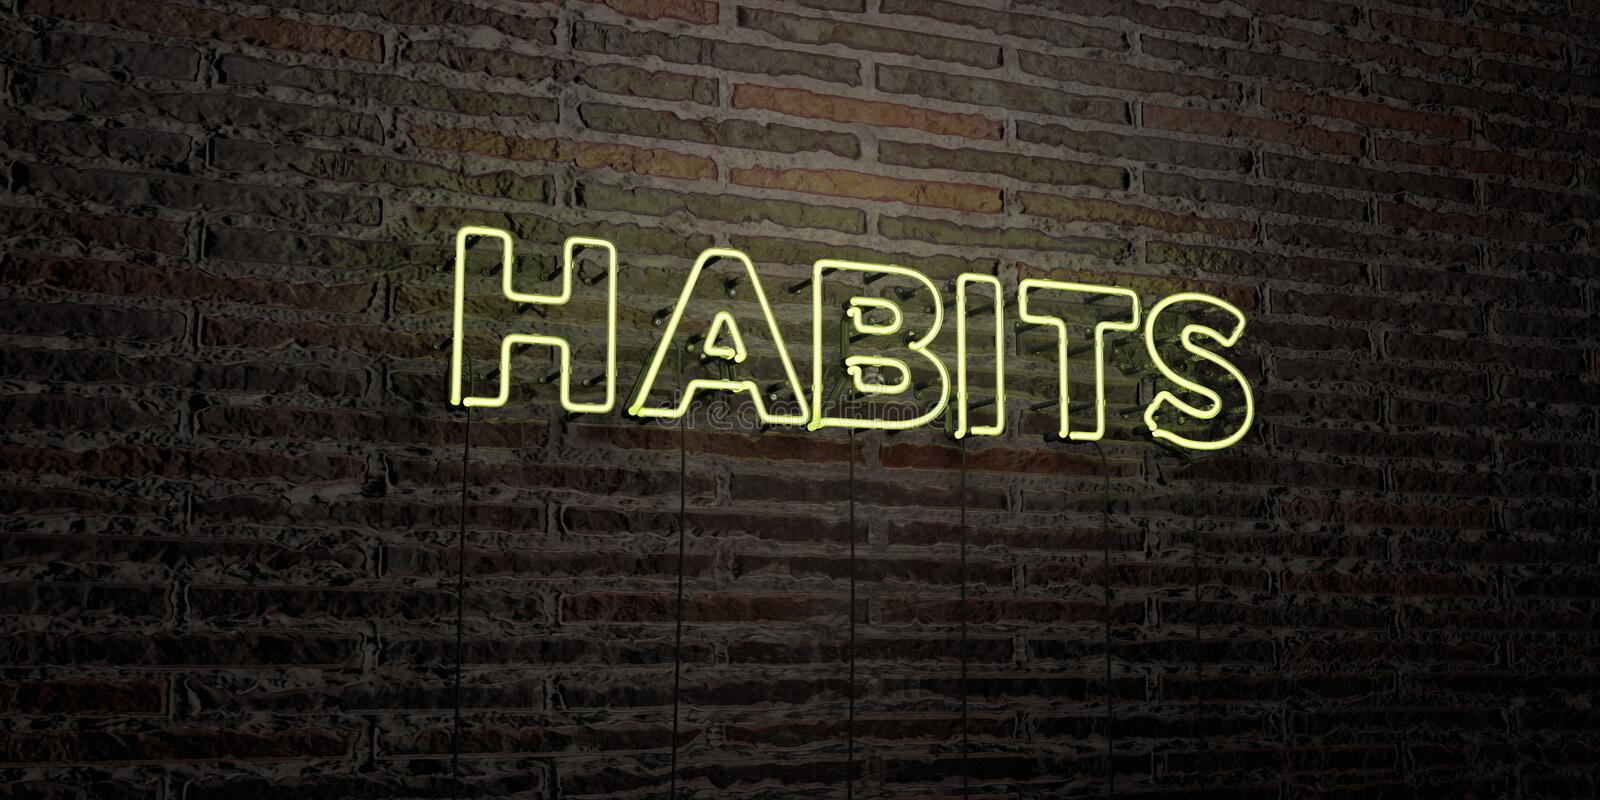 HABITS -Realistic Neon Sign on Brick Wall background - 3D rendered royalty free stock image stock illustration